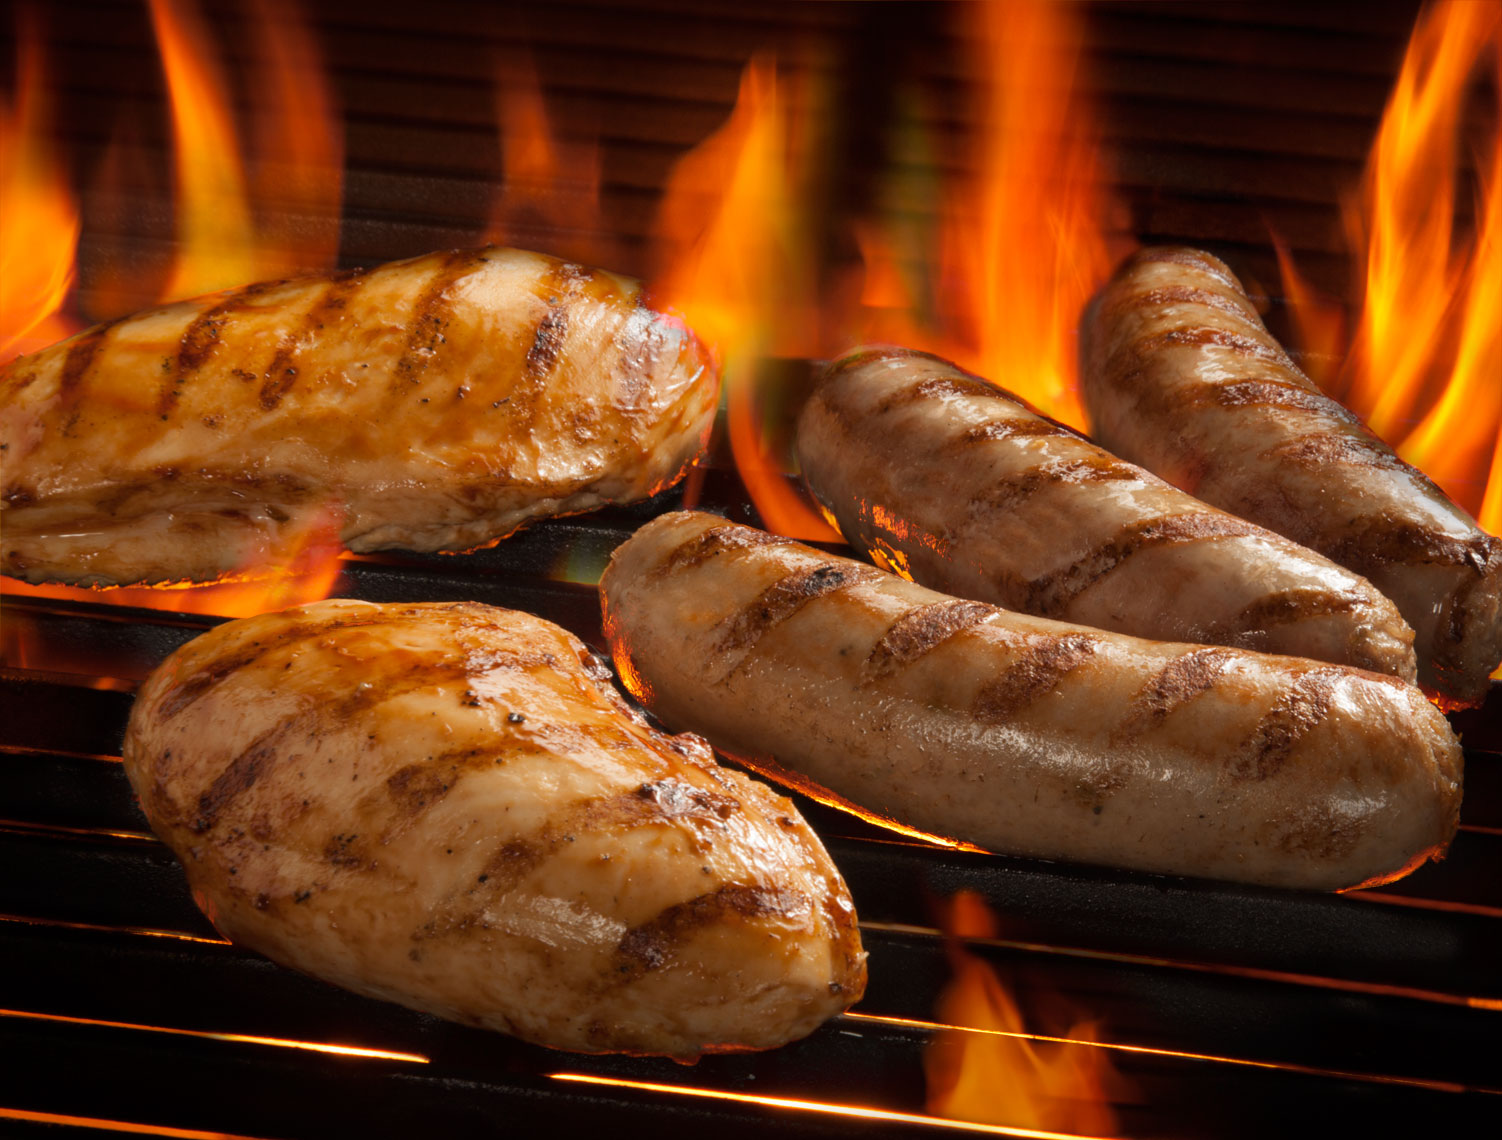 Chicken and sausages on flaming grill